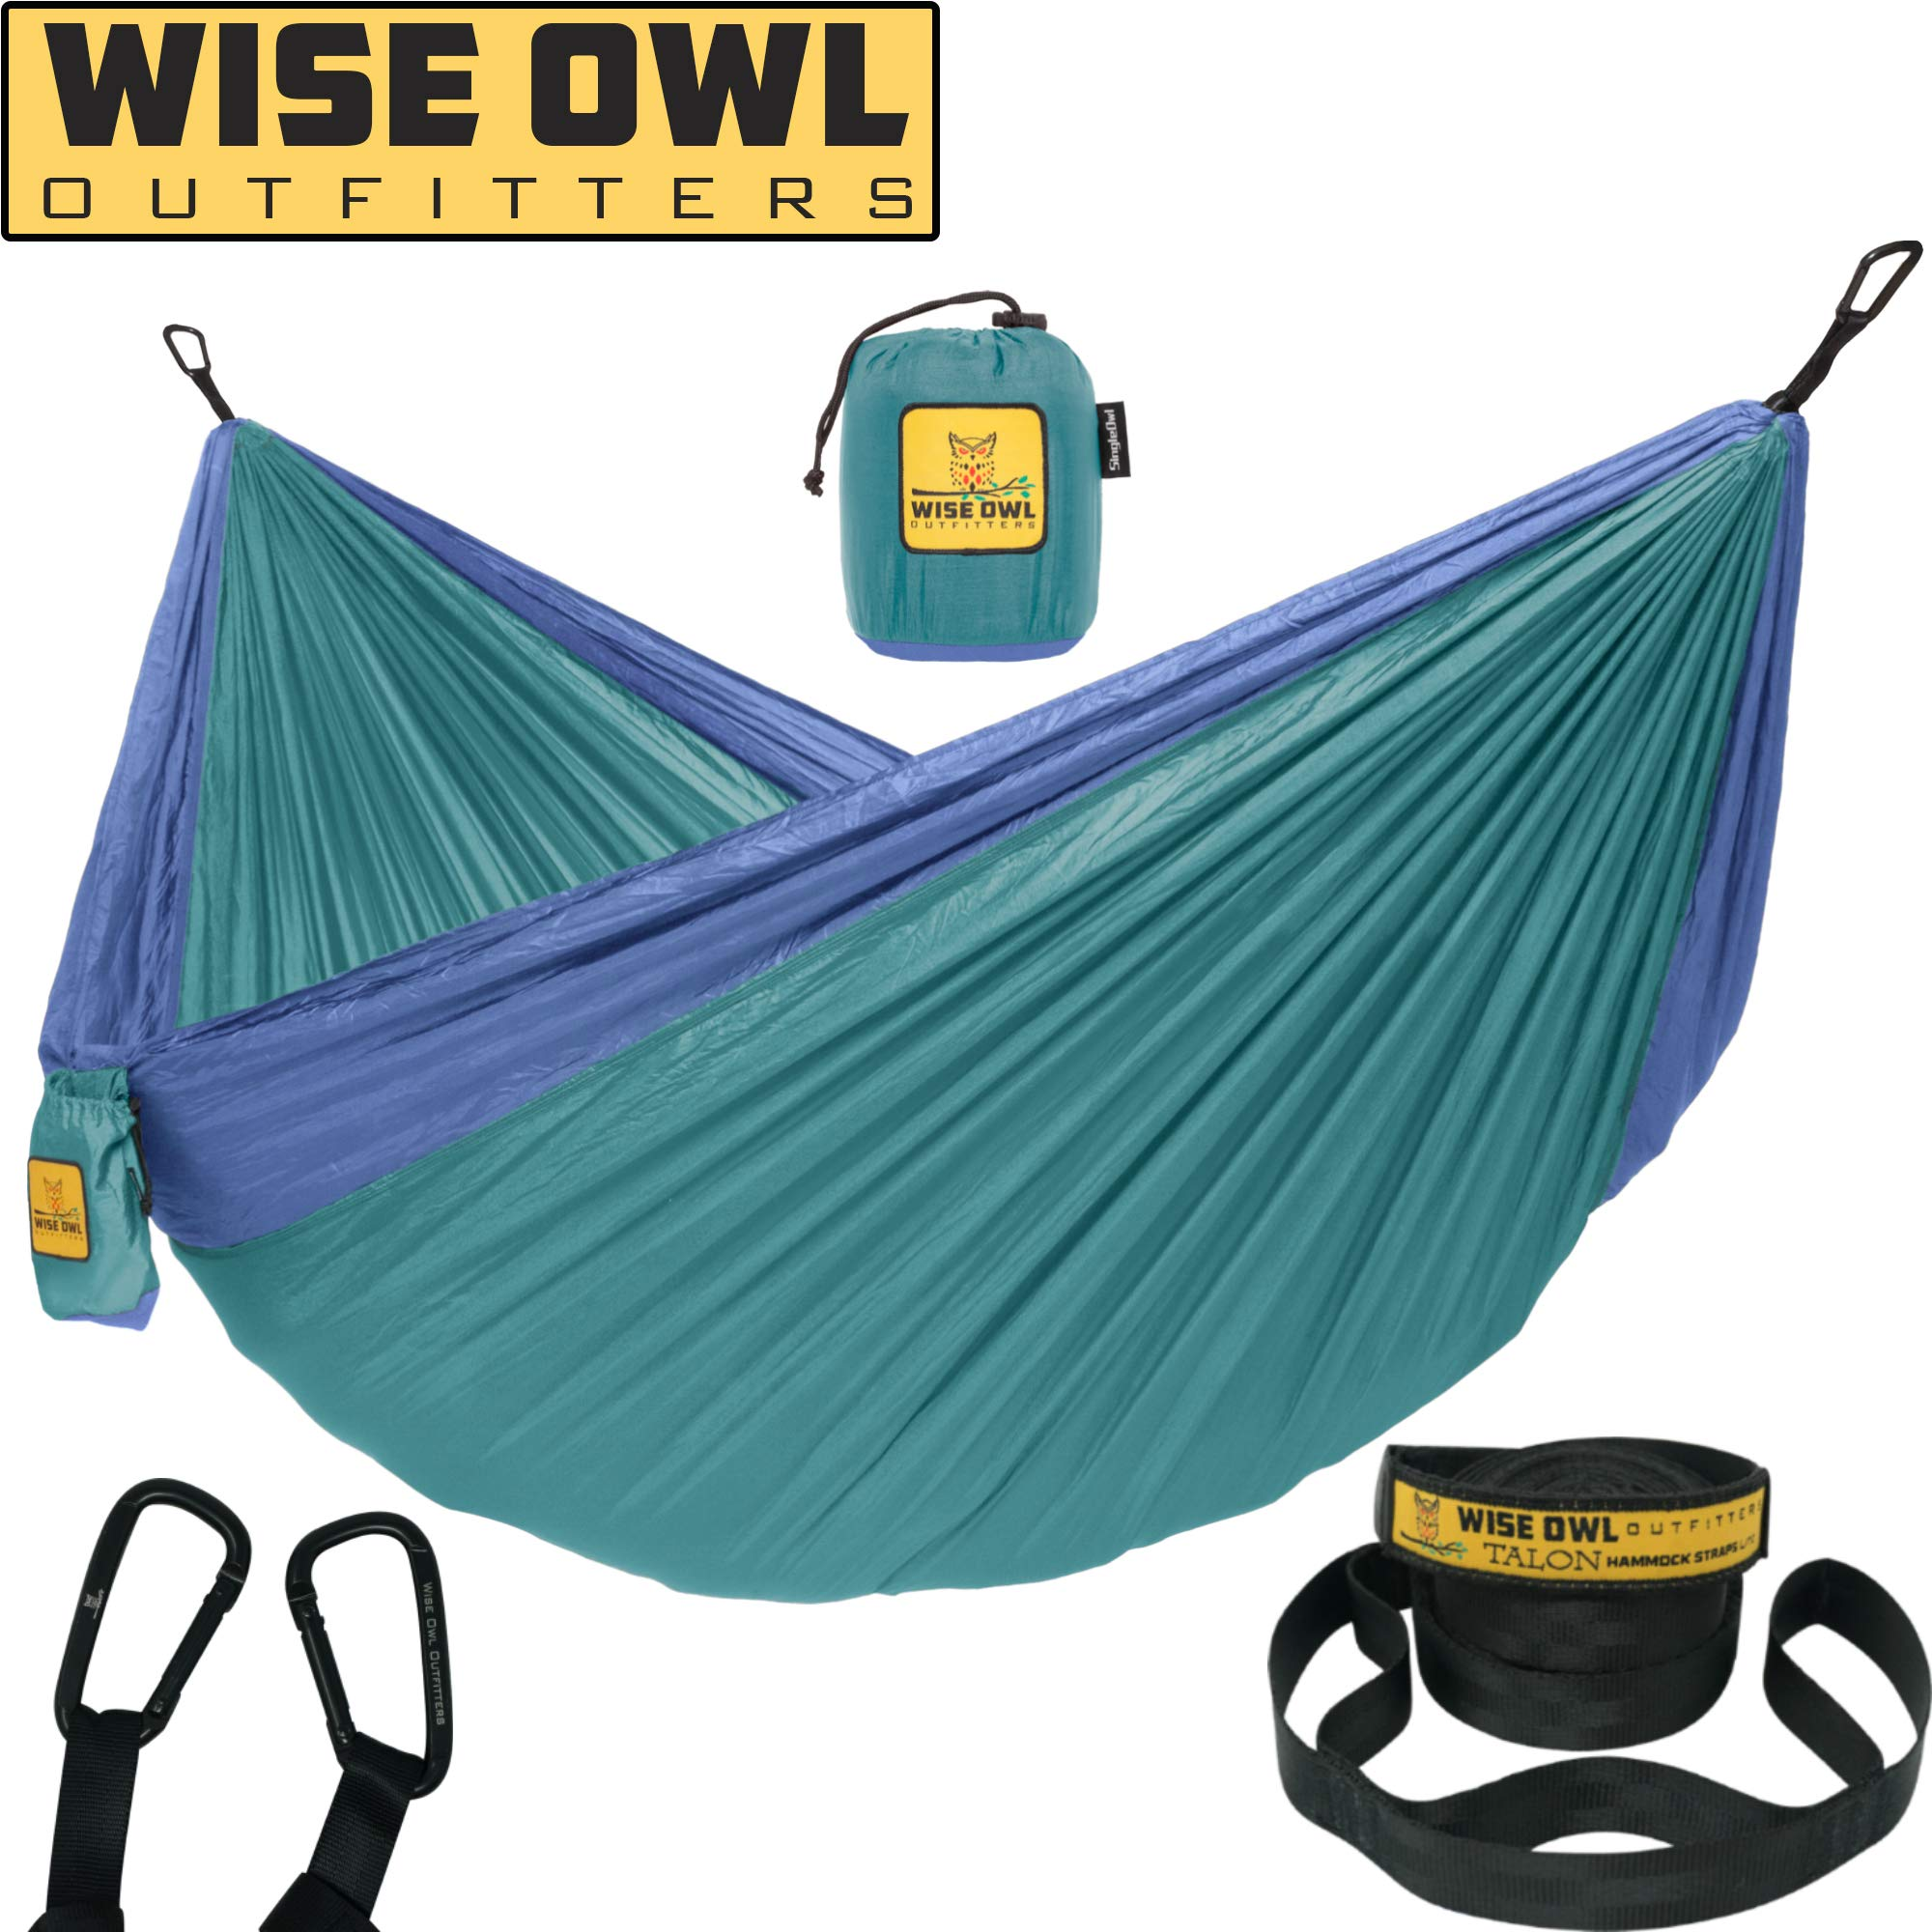 Wise Owl Outfitters Hammock Camping Double & Single with Tree Straps - USA Based Hammocks Brand Gear, Indoor Outdoor Backpacking Survival & Travel, Portable SO Gn/Blu